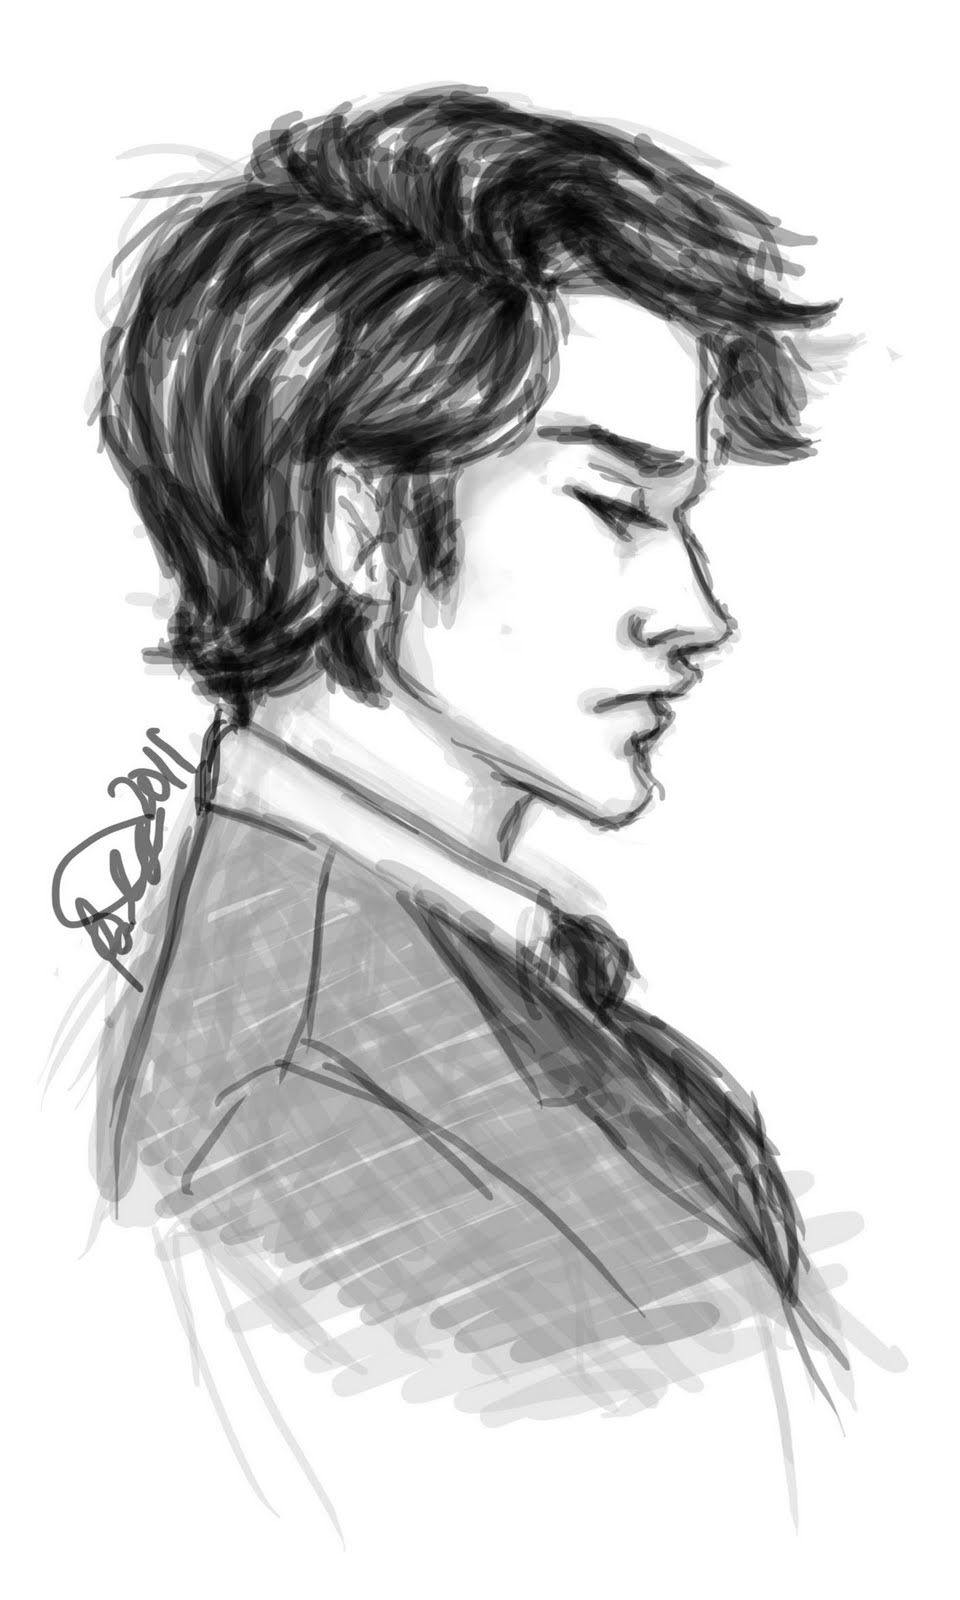 Will Herondale.  Exactly as I had imagined him. :3